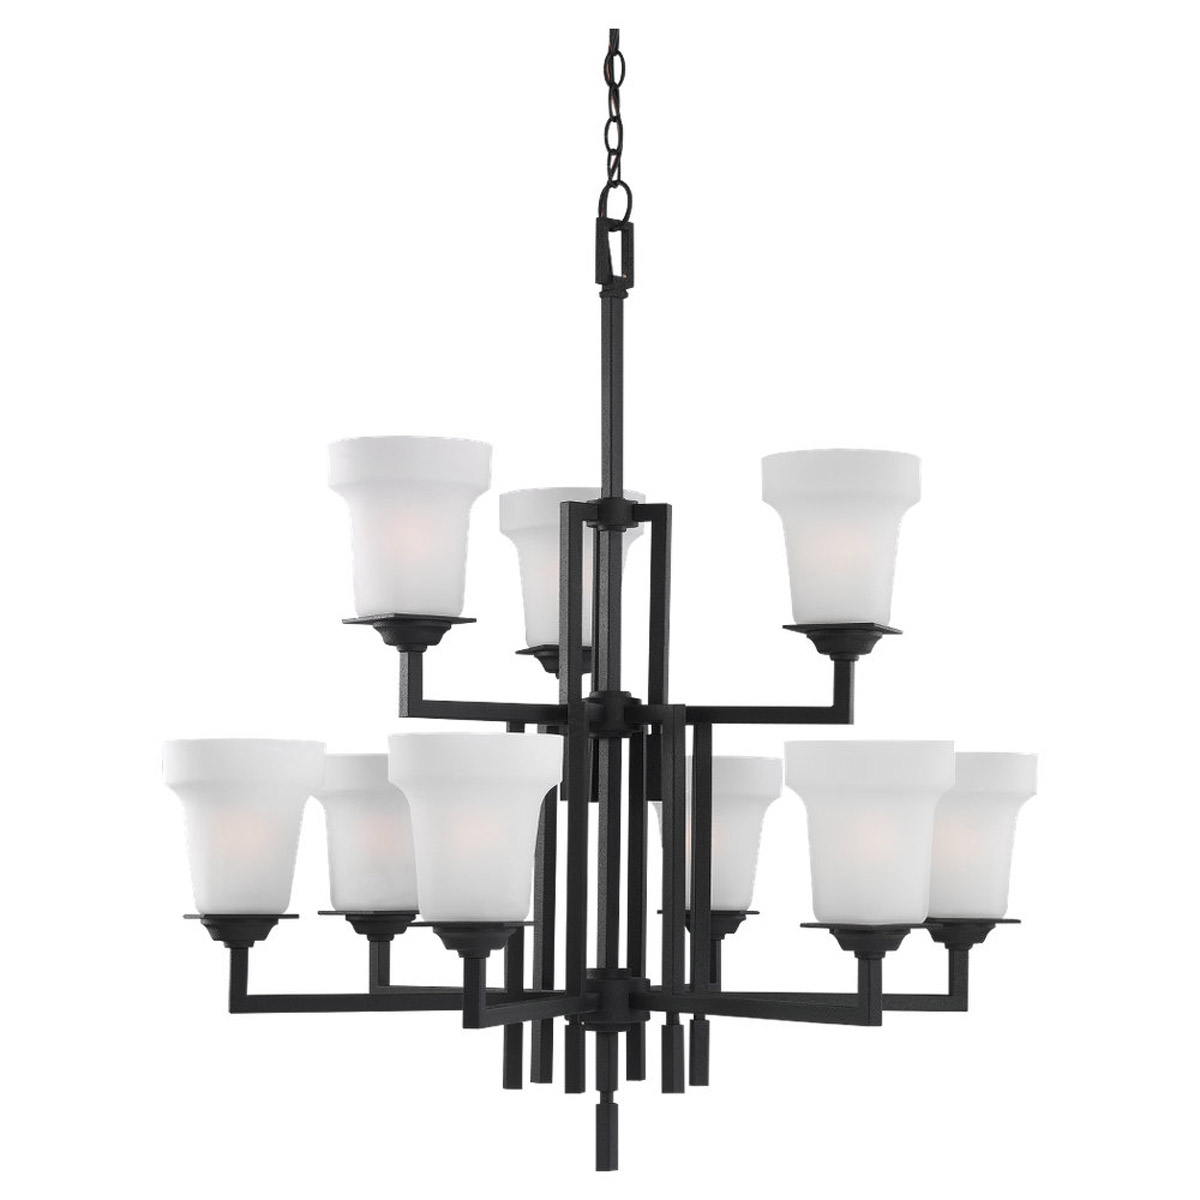 Sea Gull Lighting Cardwell 9 Light Chandelier in Blacksmith 31633-839 photo